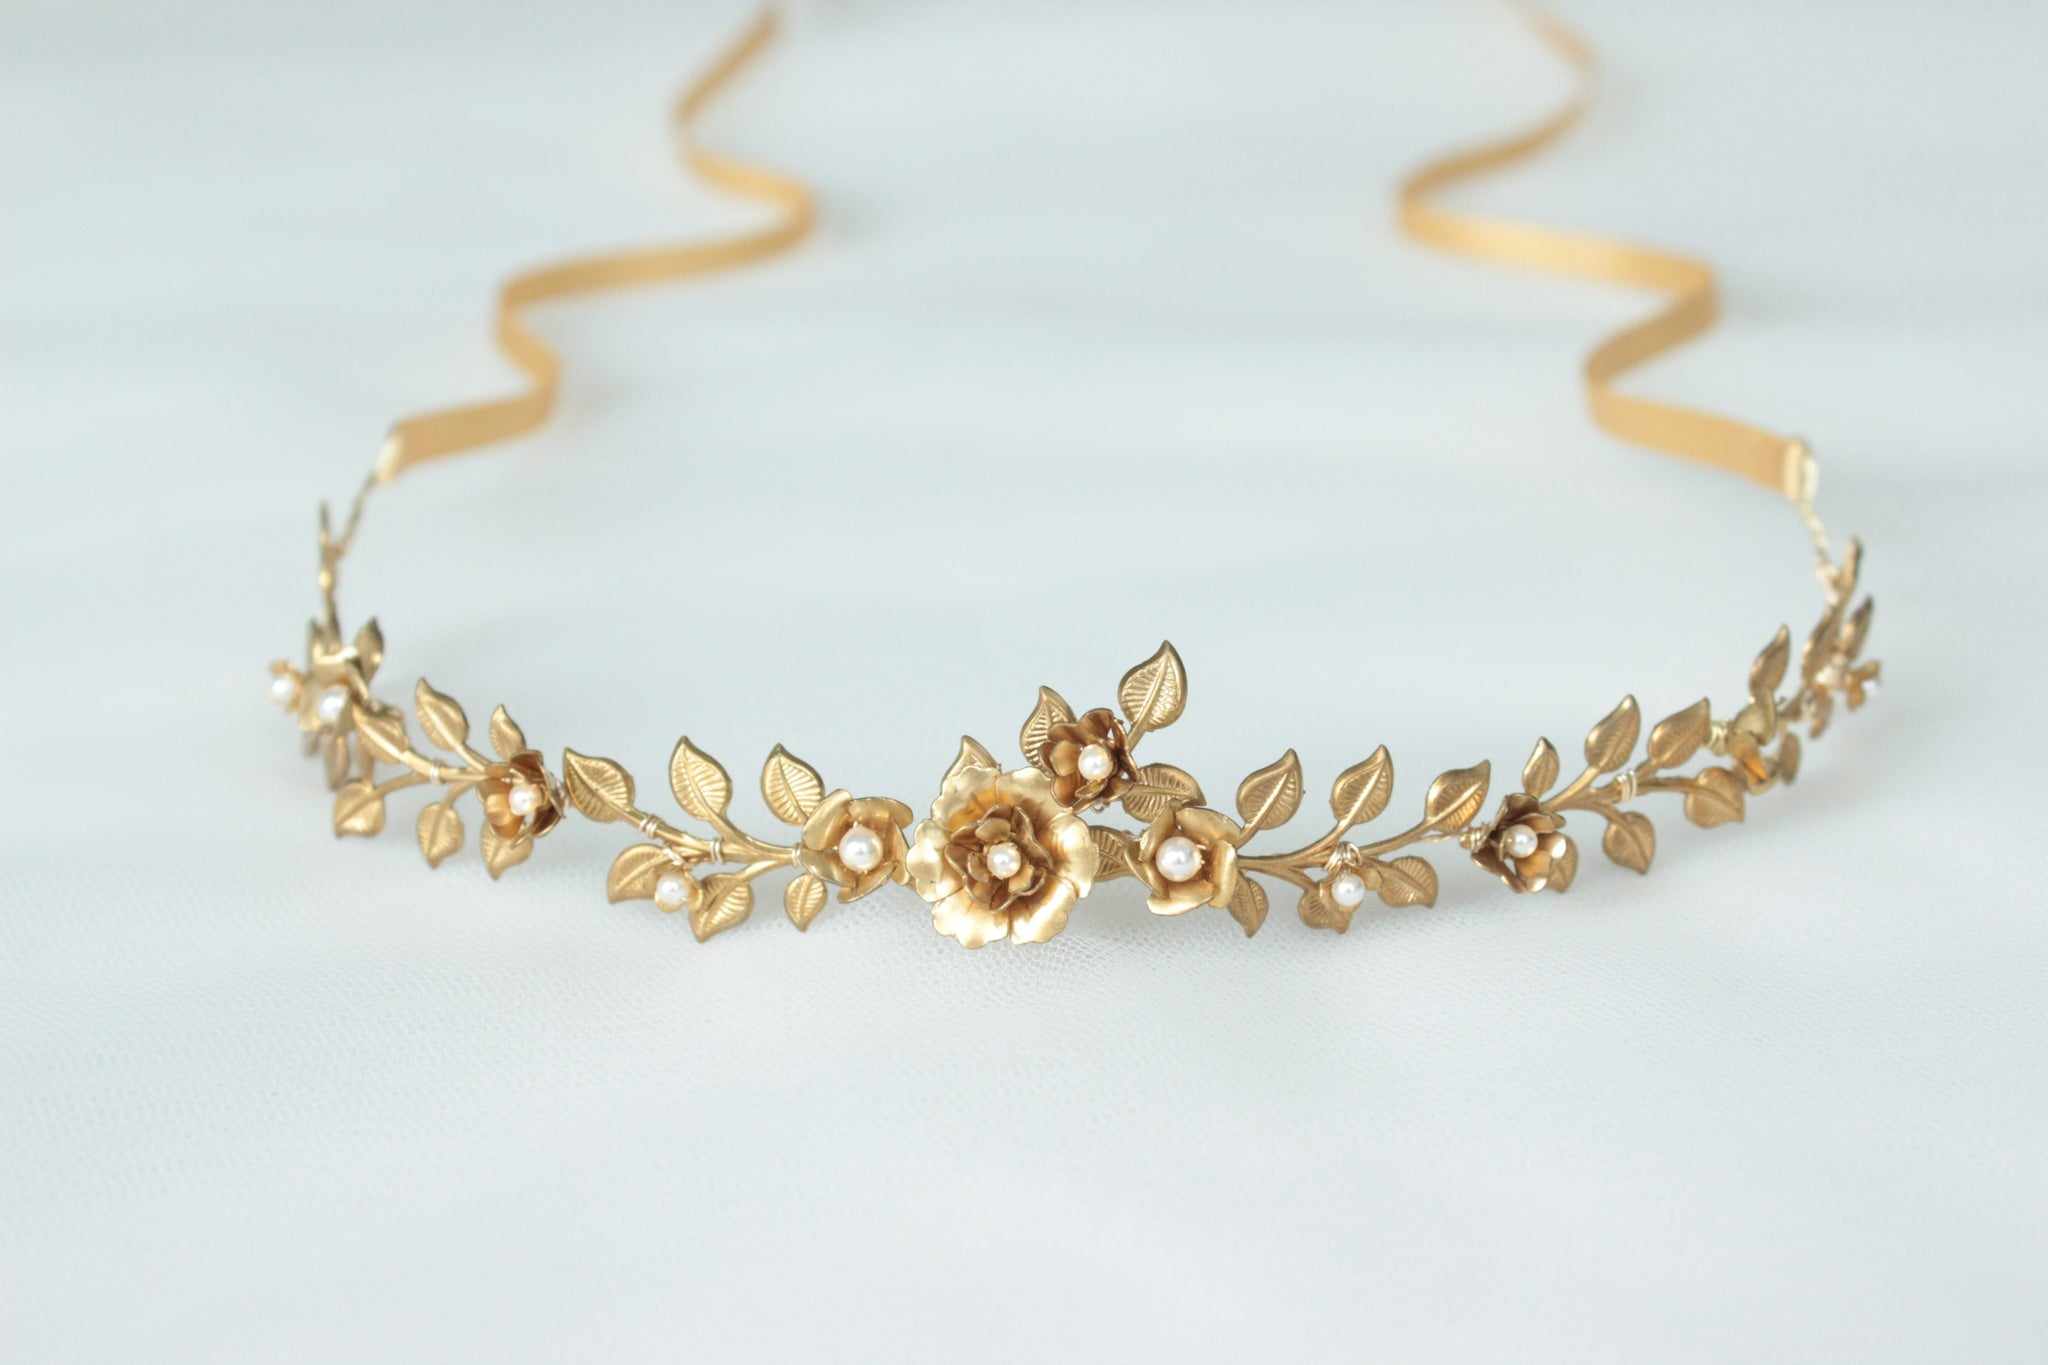 gold wedding headpiece, gold bridal headband, gold wedding circlet, gold forehead jewellery, forehead bridal headpiece, floral gold wedding headpiece